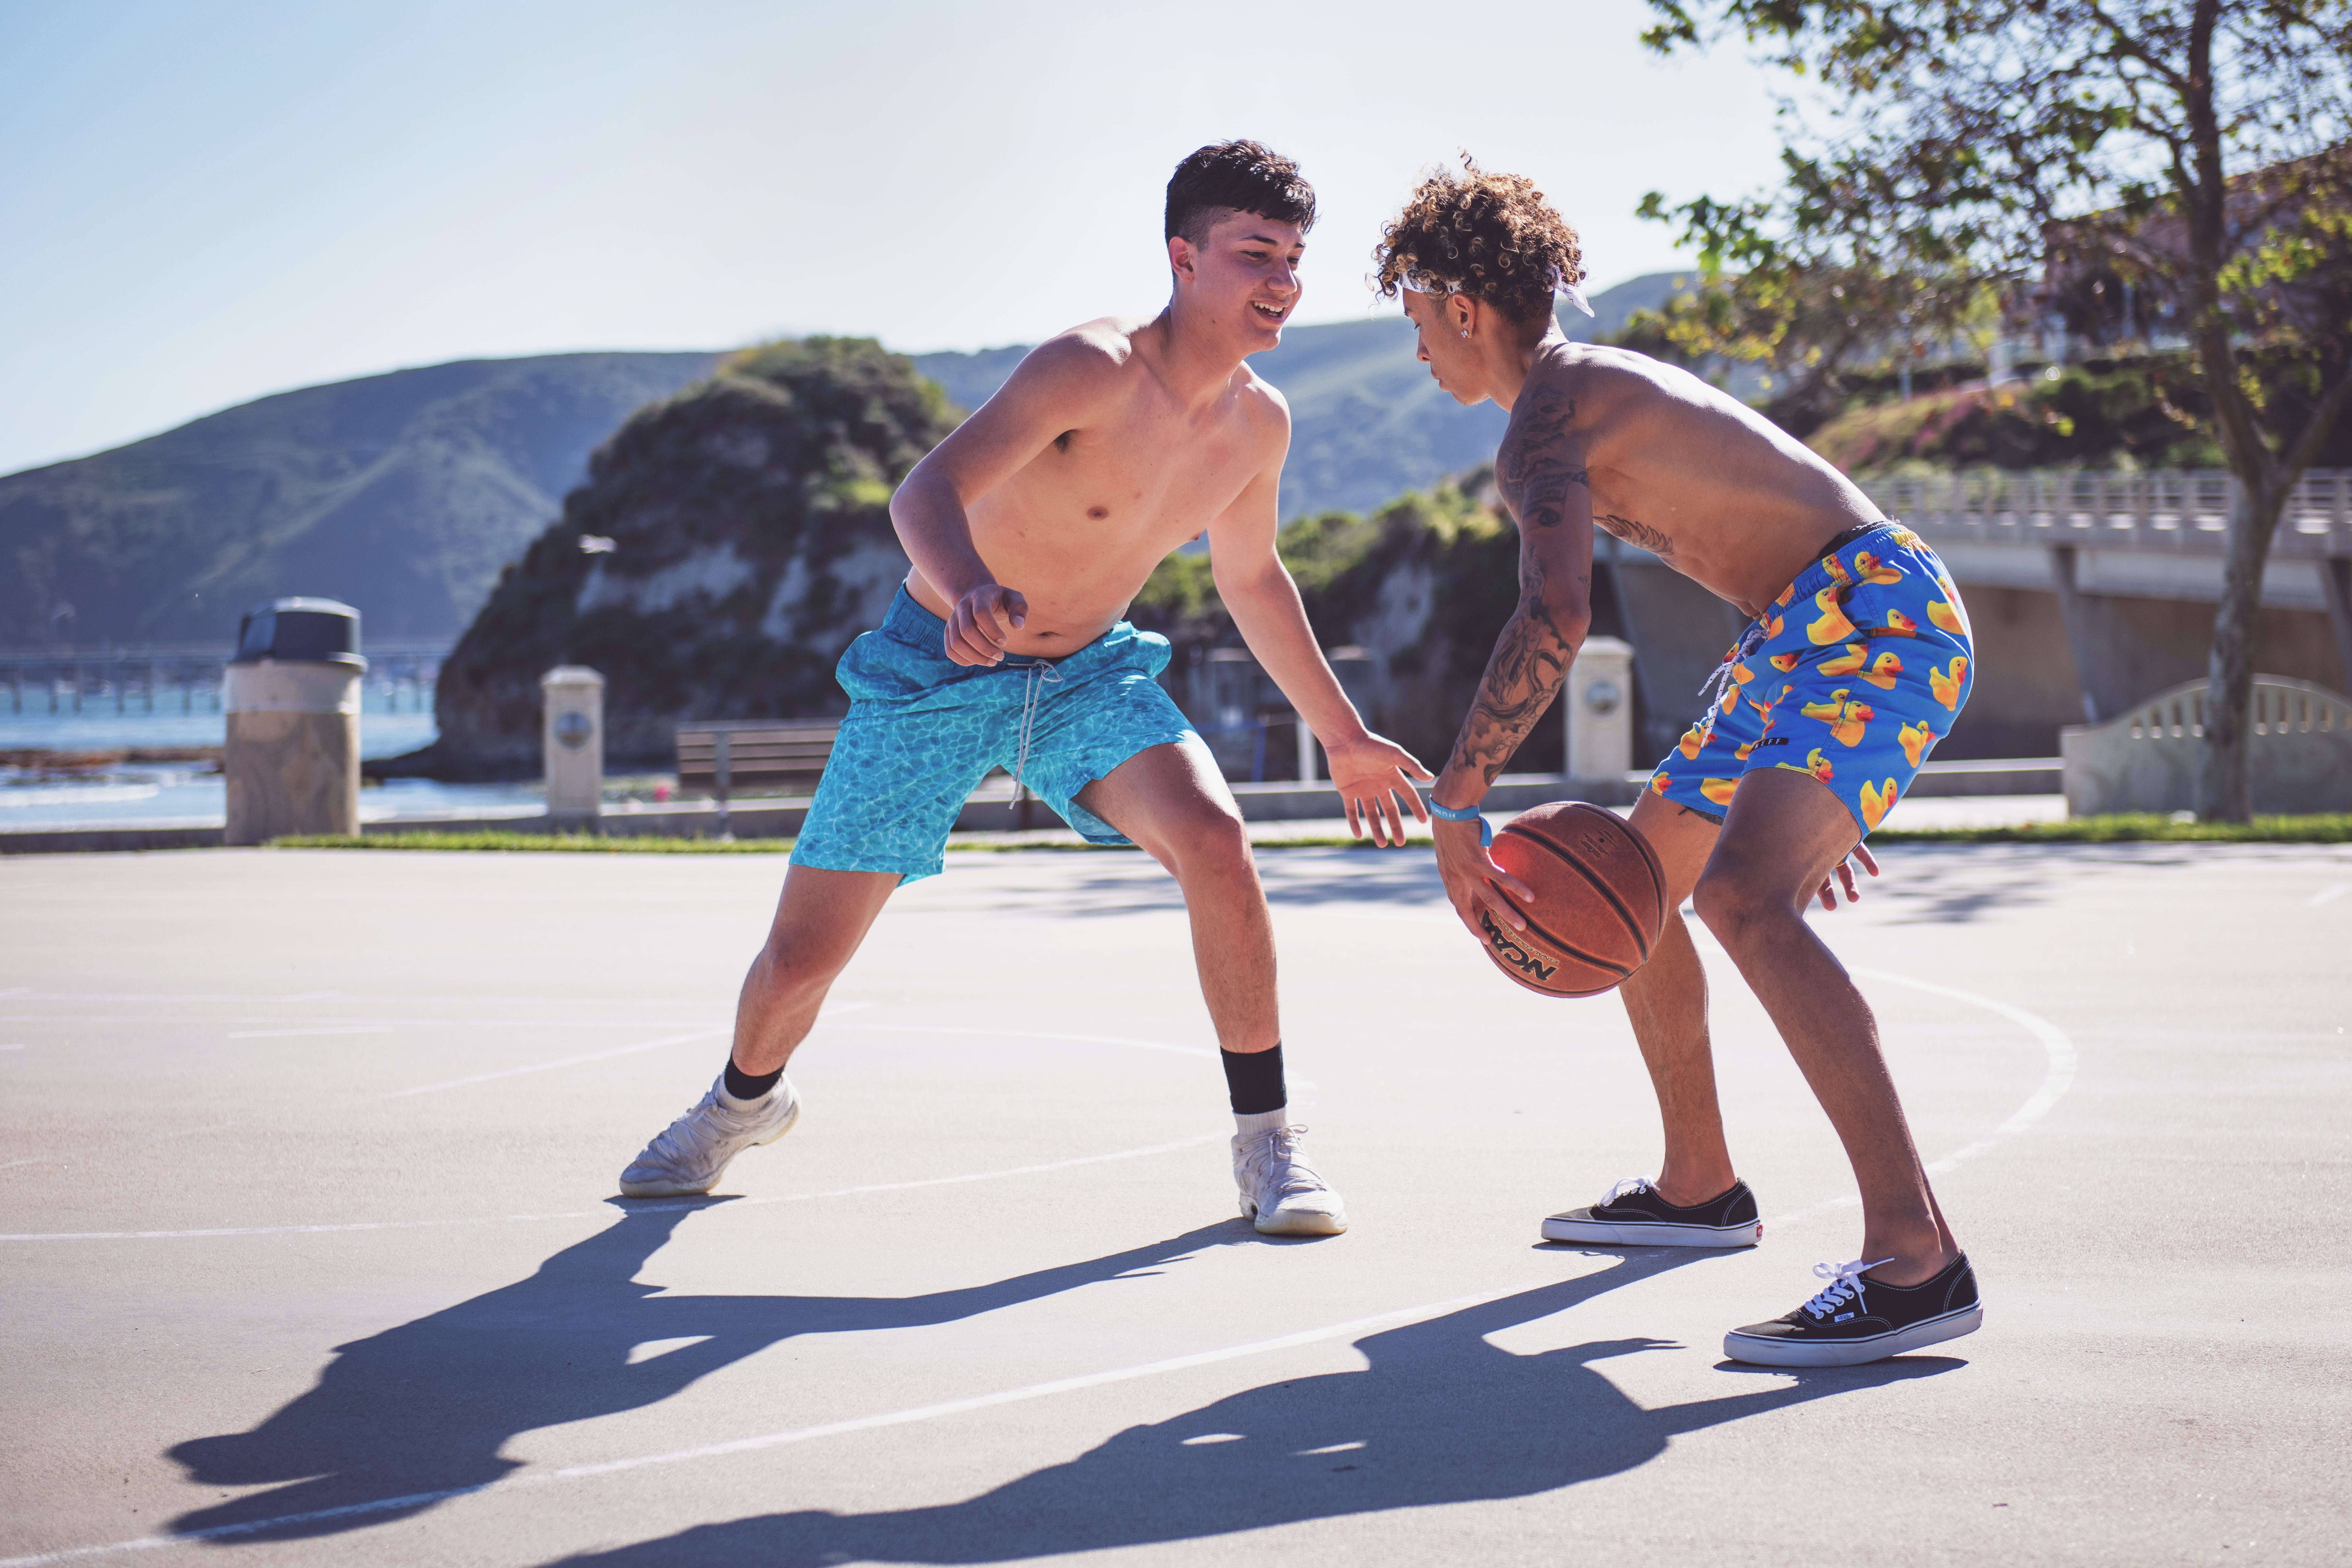 Photo Of Two Men Playing Basketball